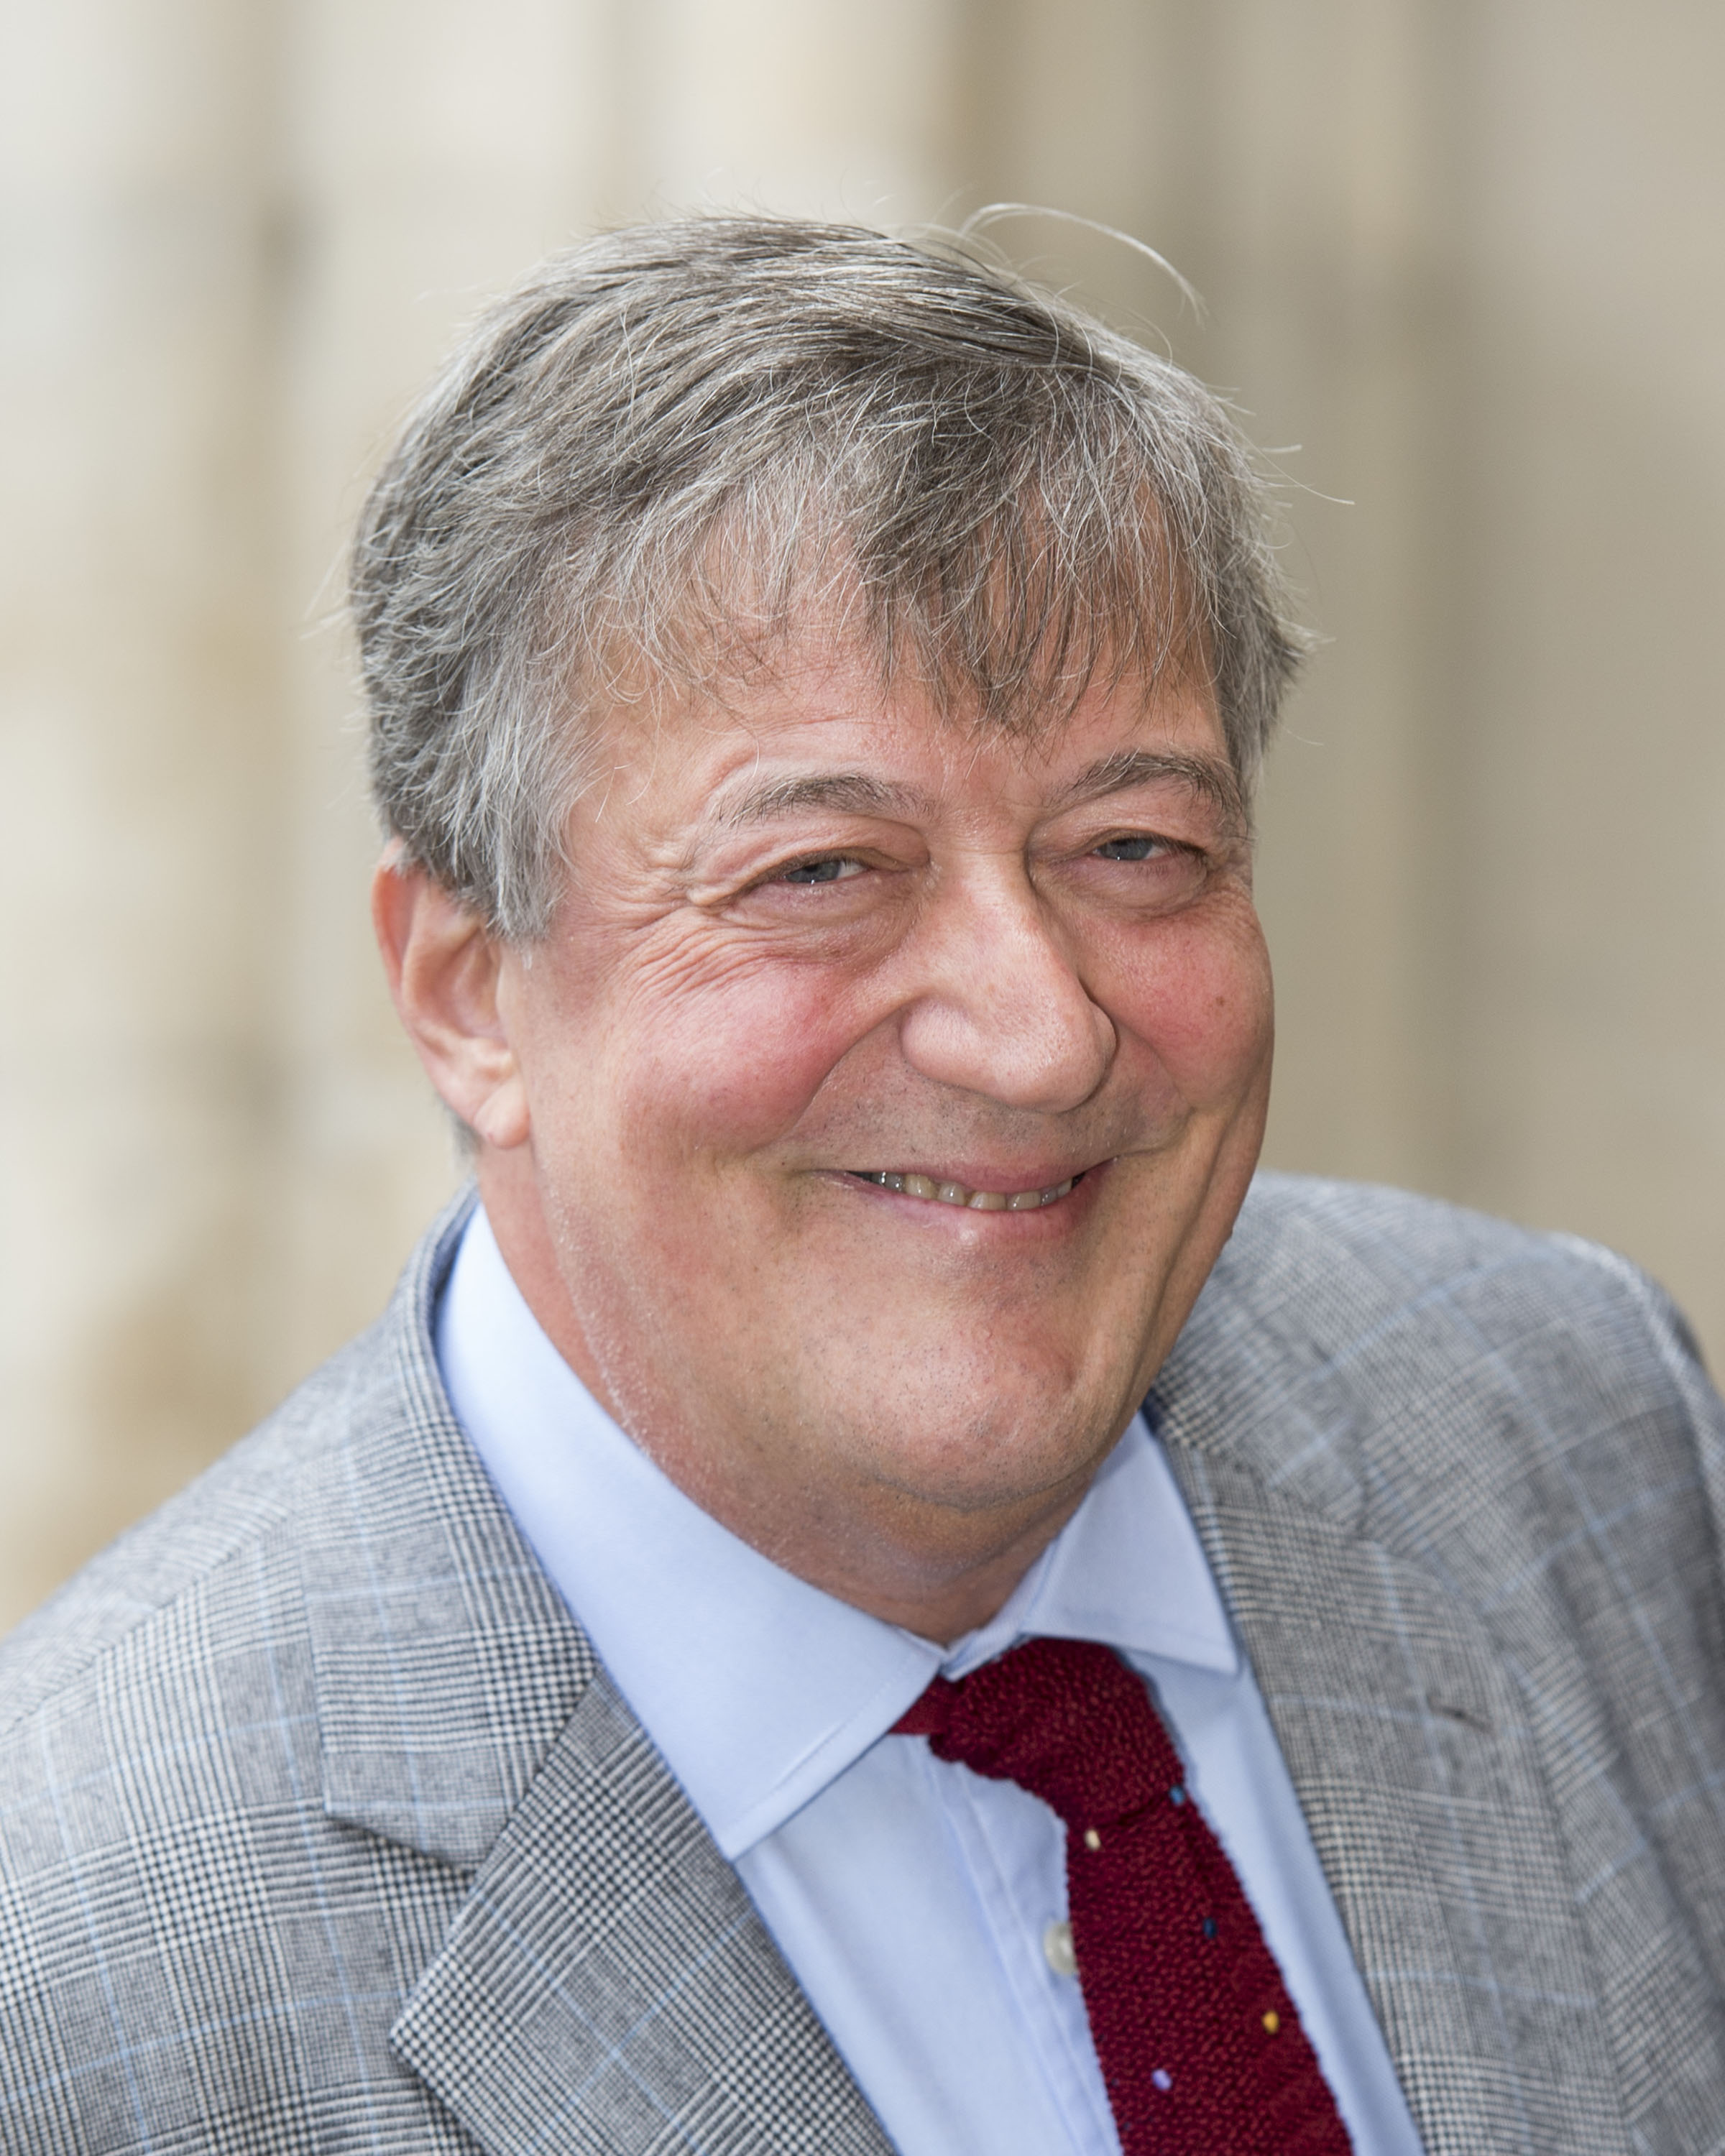 Stephen Fry attends a memorial service for comedian Ronnie Corbett at Westminster Abbey